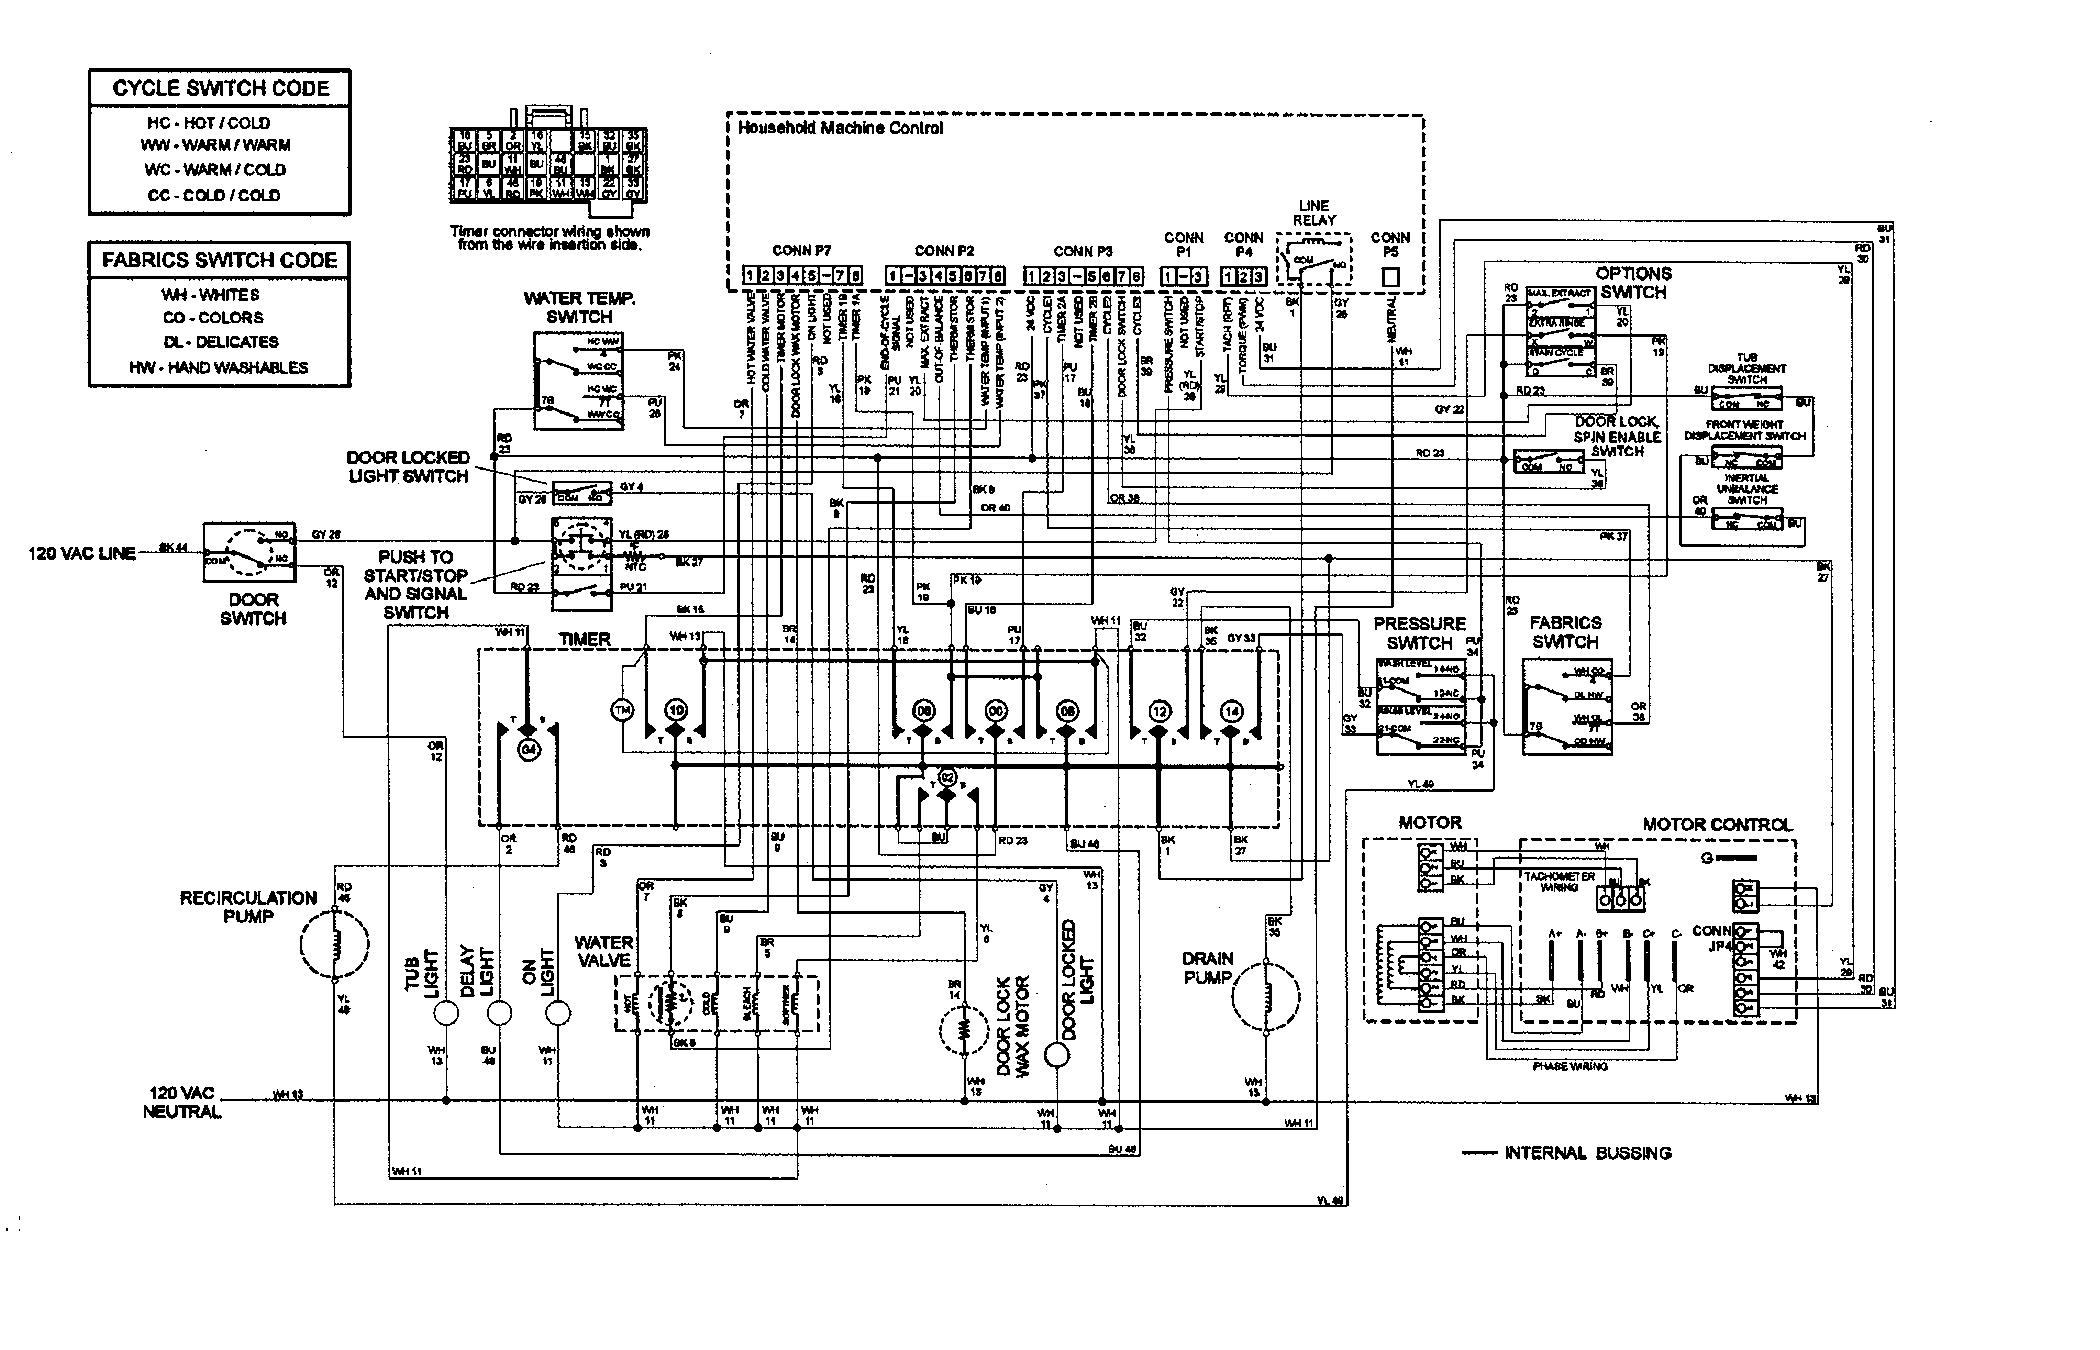 maytag washer wiring diagram Download-Maytag Washer Wiring Diagram M 10-e